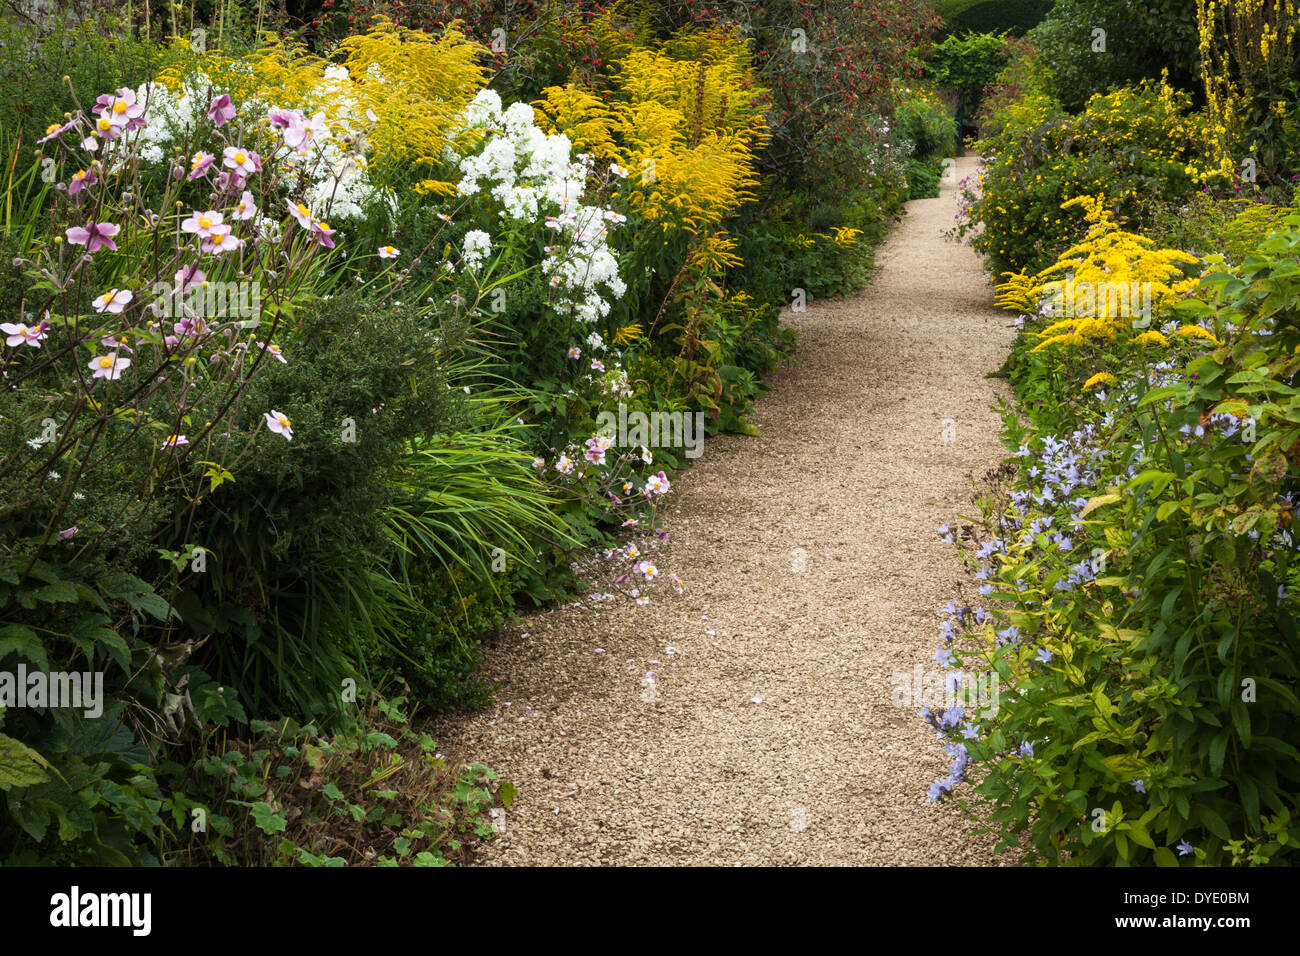 A garden path in early September lined by herbaceous borders with late summer flowering plants, Rousham House, Oxfordshire, England - Stock Image